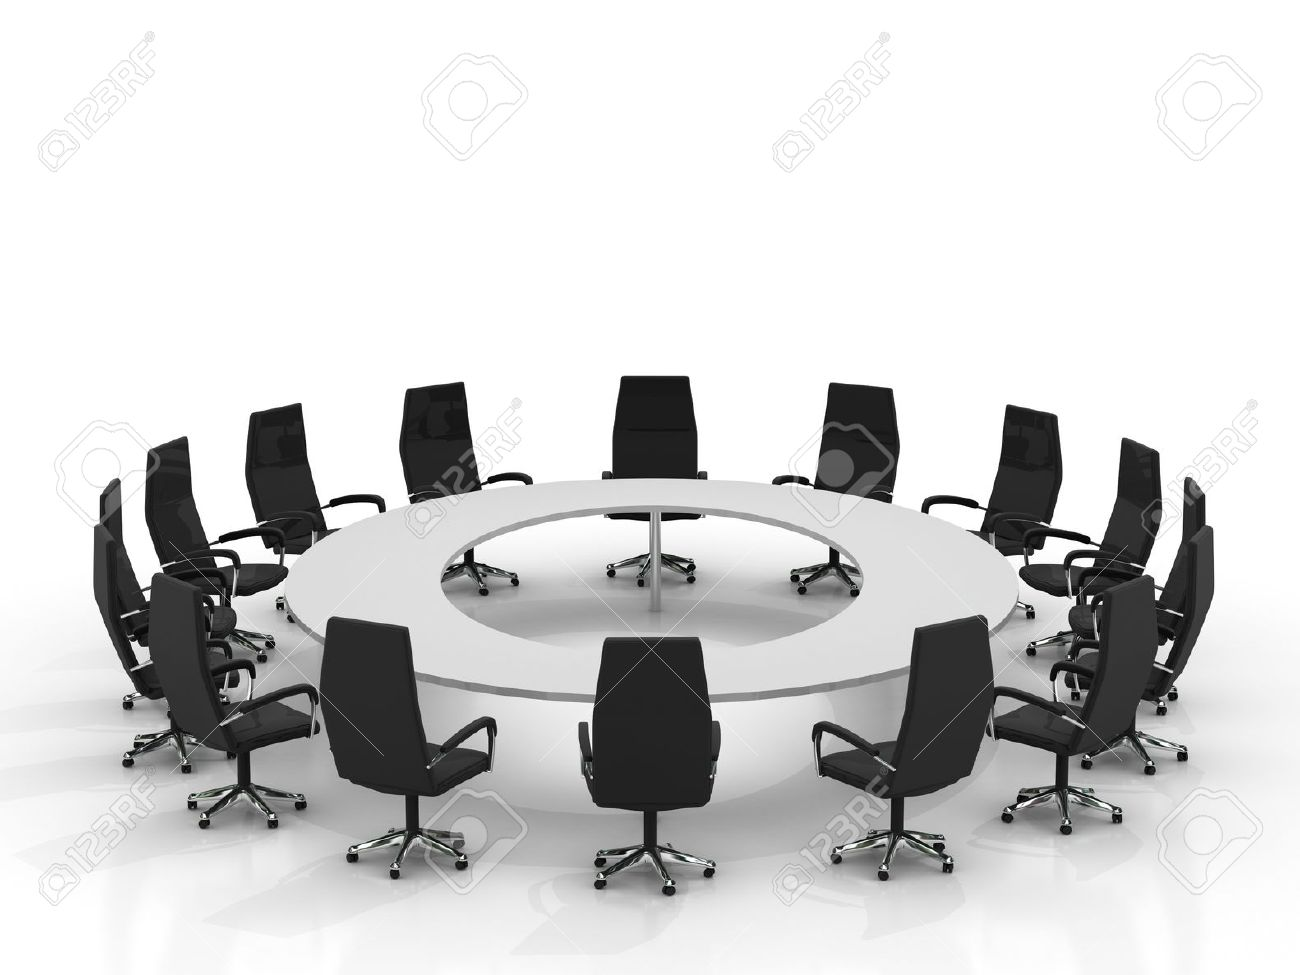 Round table meeting icon - Round Table Meeting Conference Round Table And Chairs Isolated On White Background Stock Photo